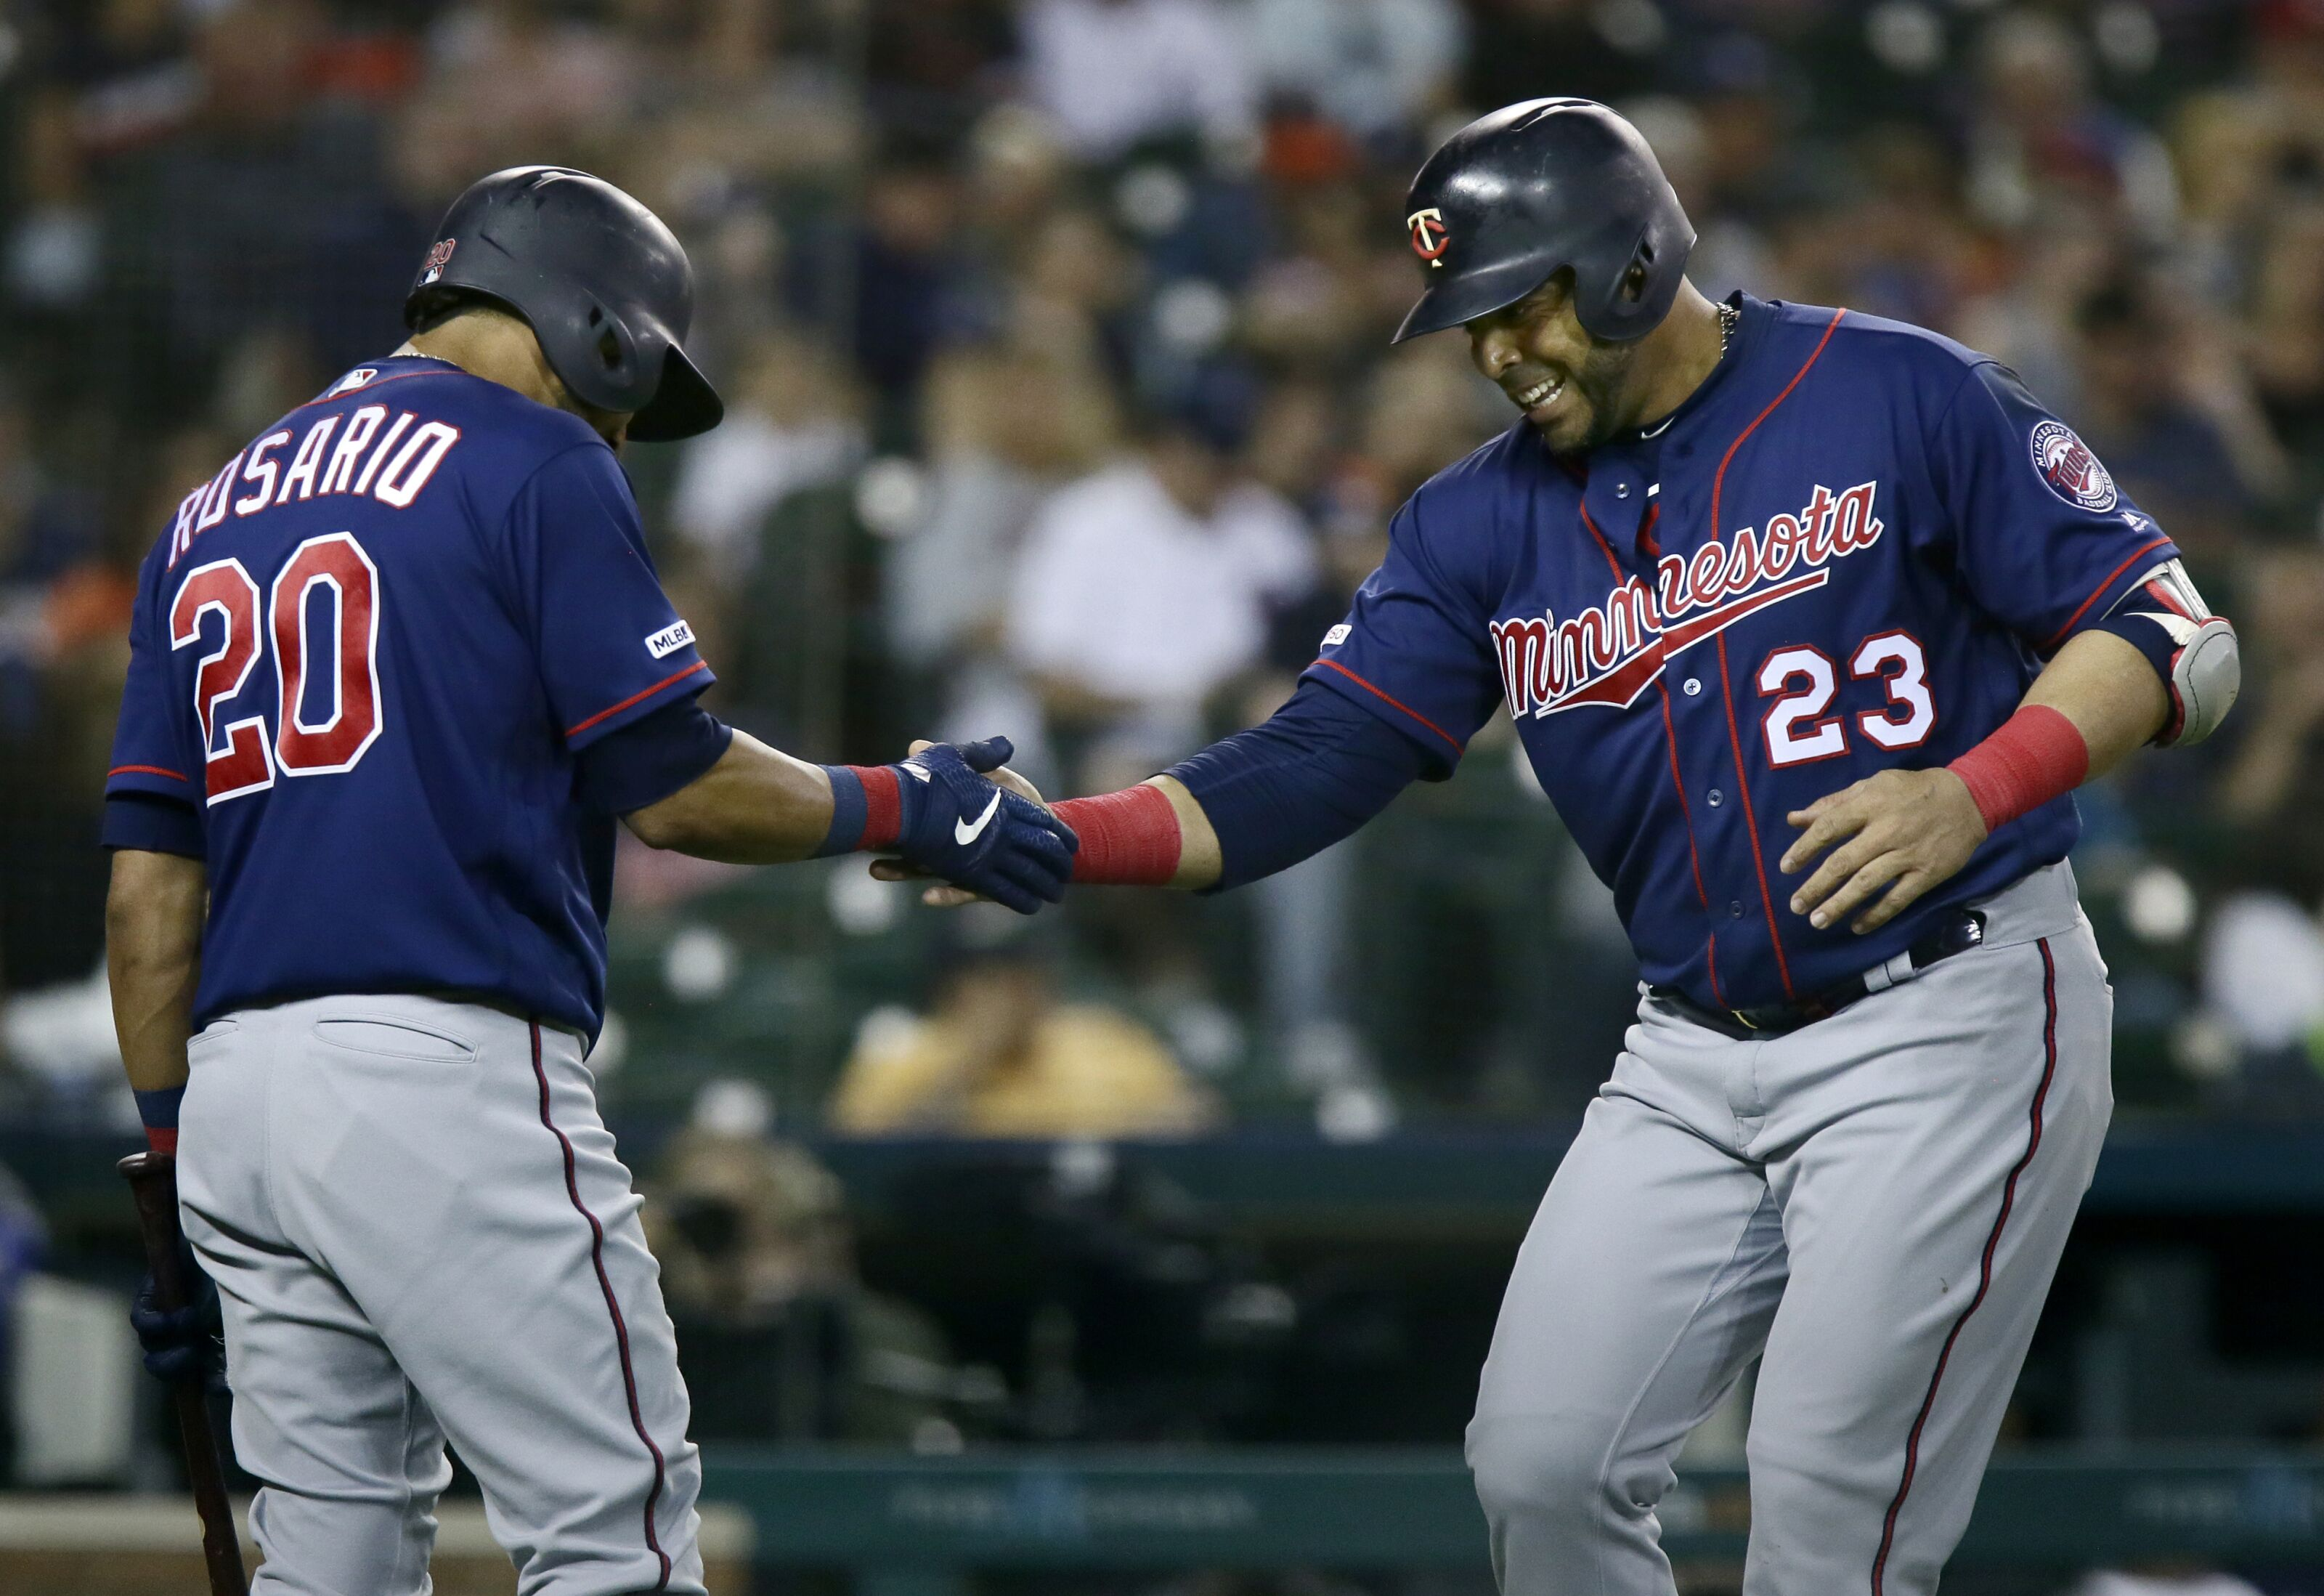 Nelson Cruz lifts Minnesota Twins to series win over Tampa Bay